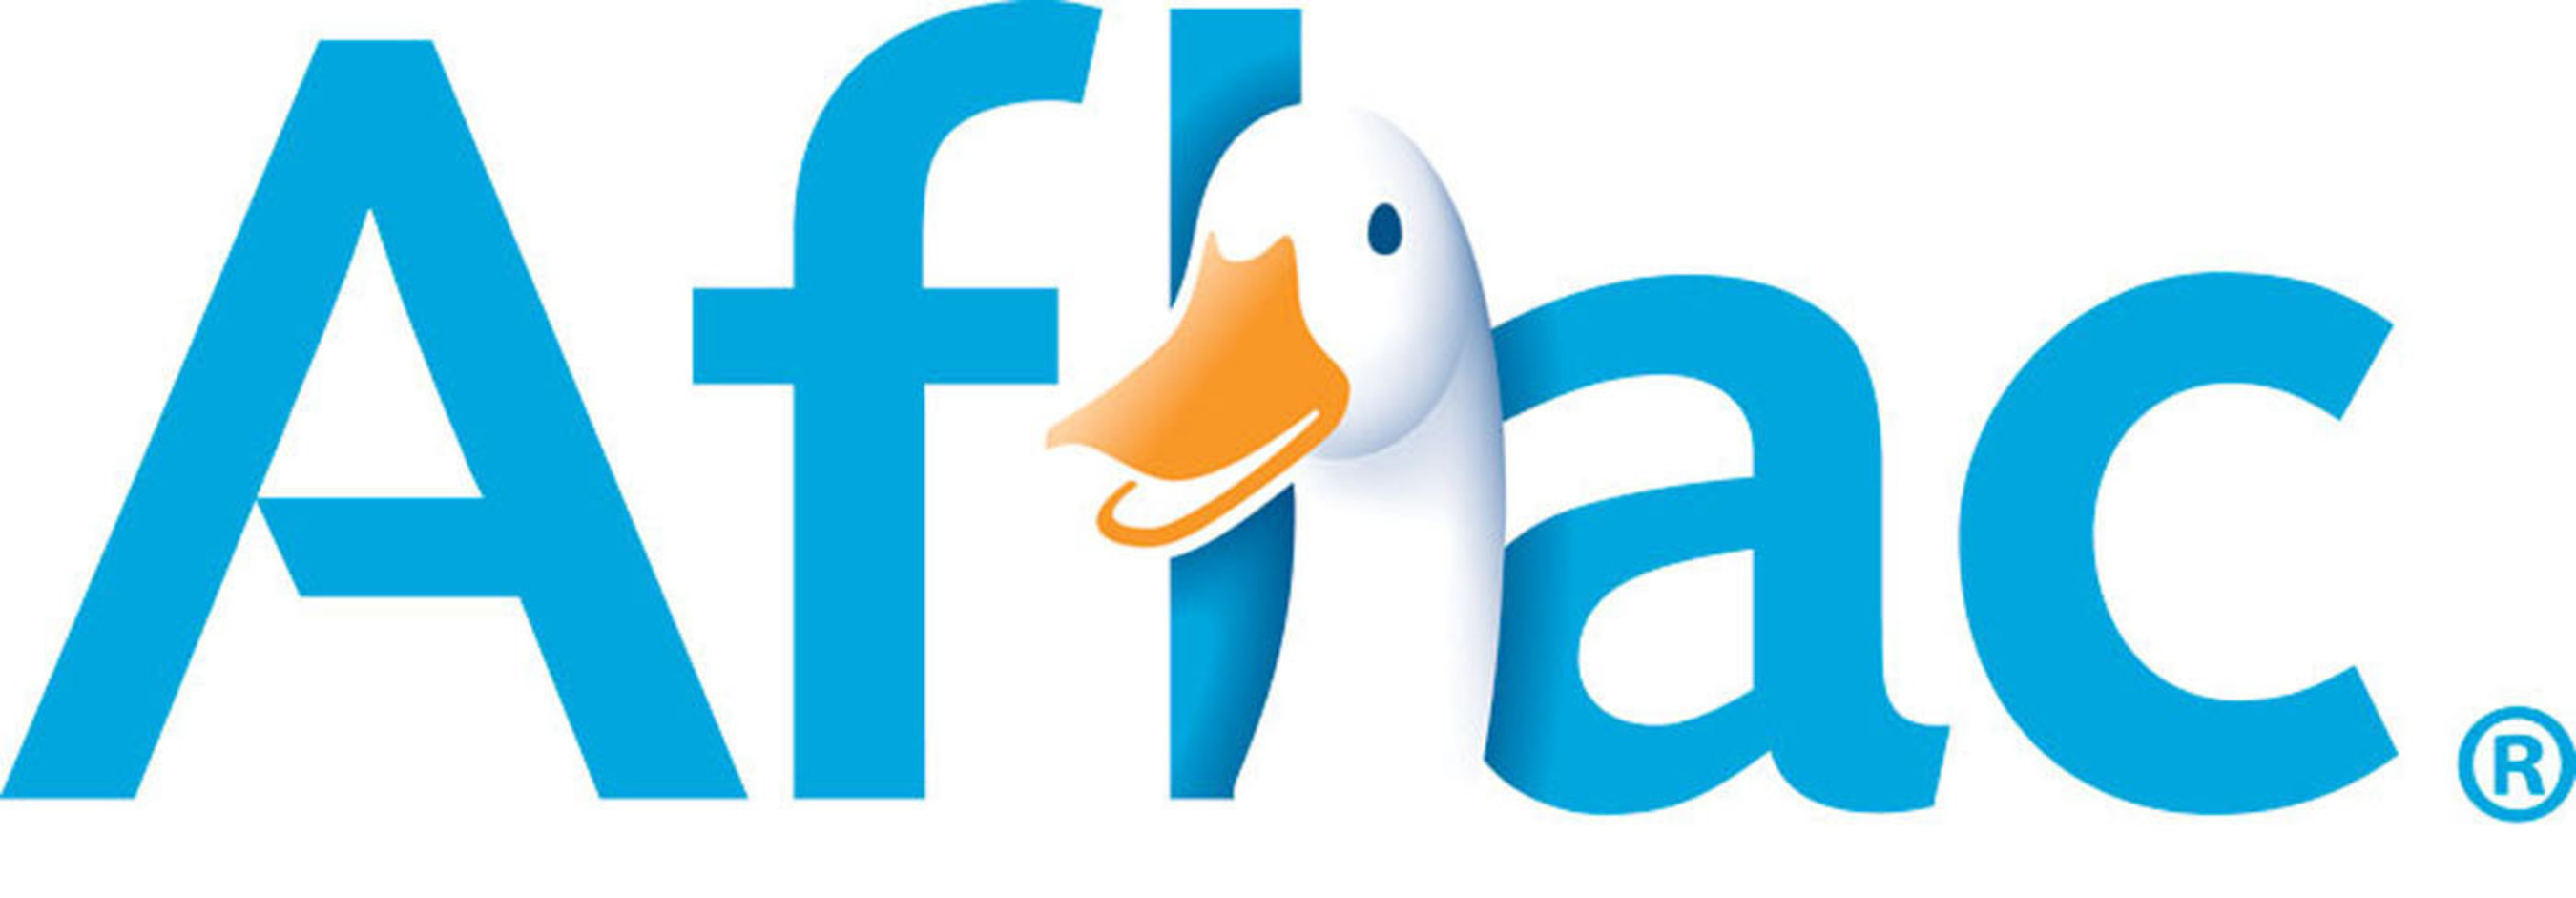 Aflac Announces New Enhancements To Its Short Term Disability Insurance Policy